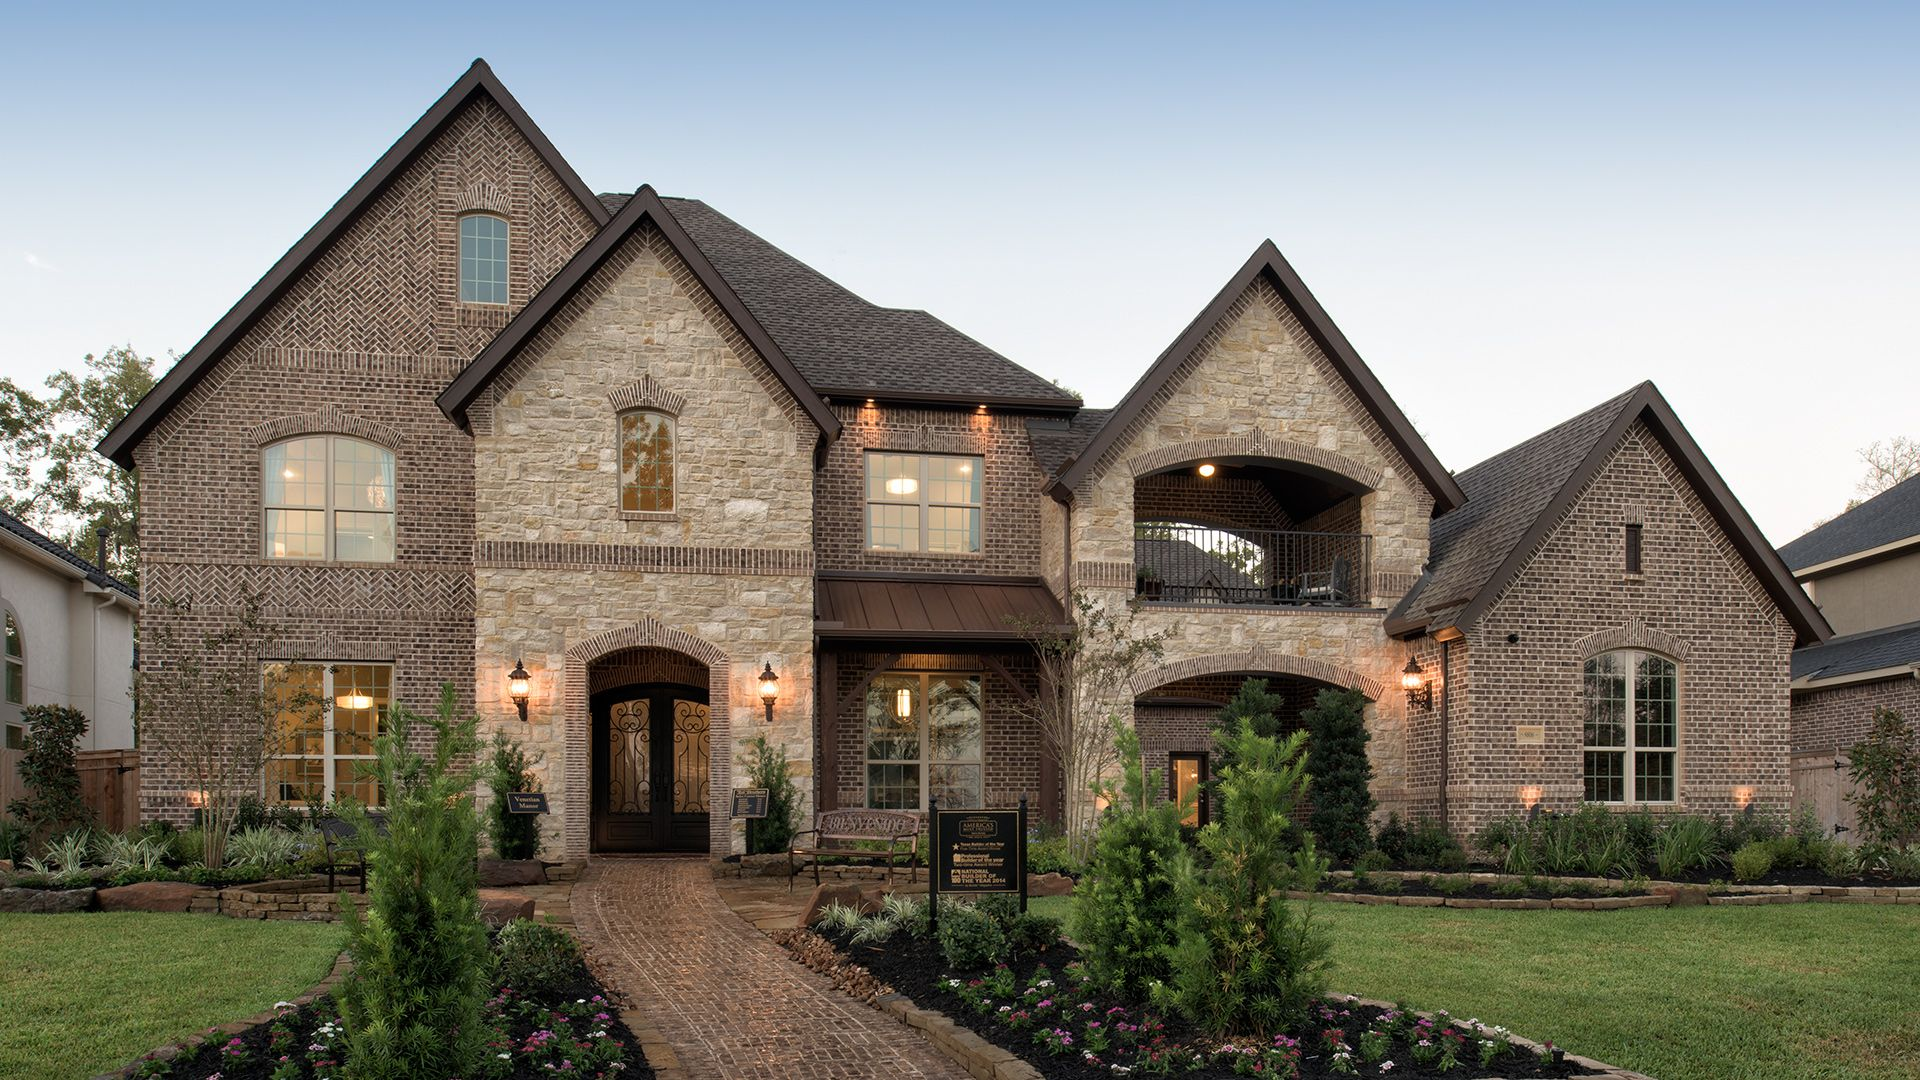 Swell Missouri City Tx New Homes For Sale Sienna Plantation Download Free Architecture Designs Grimeyleaguecom